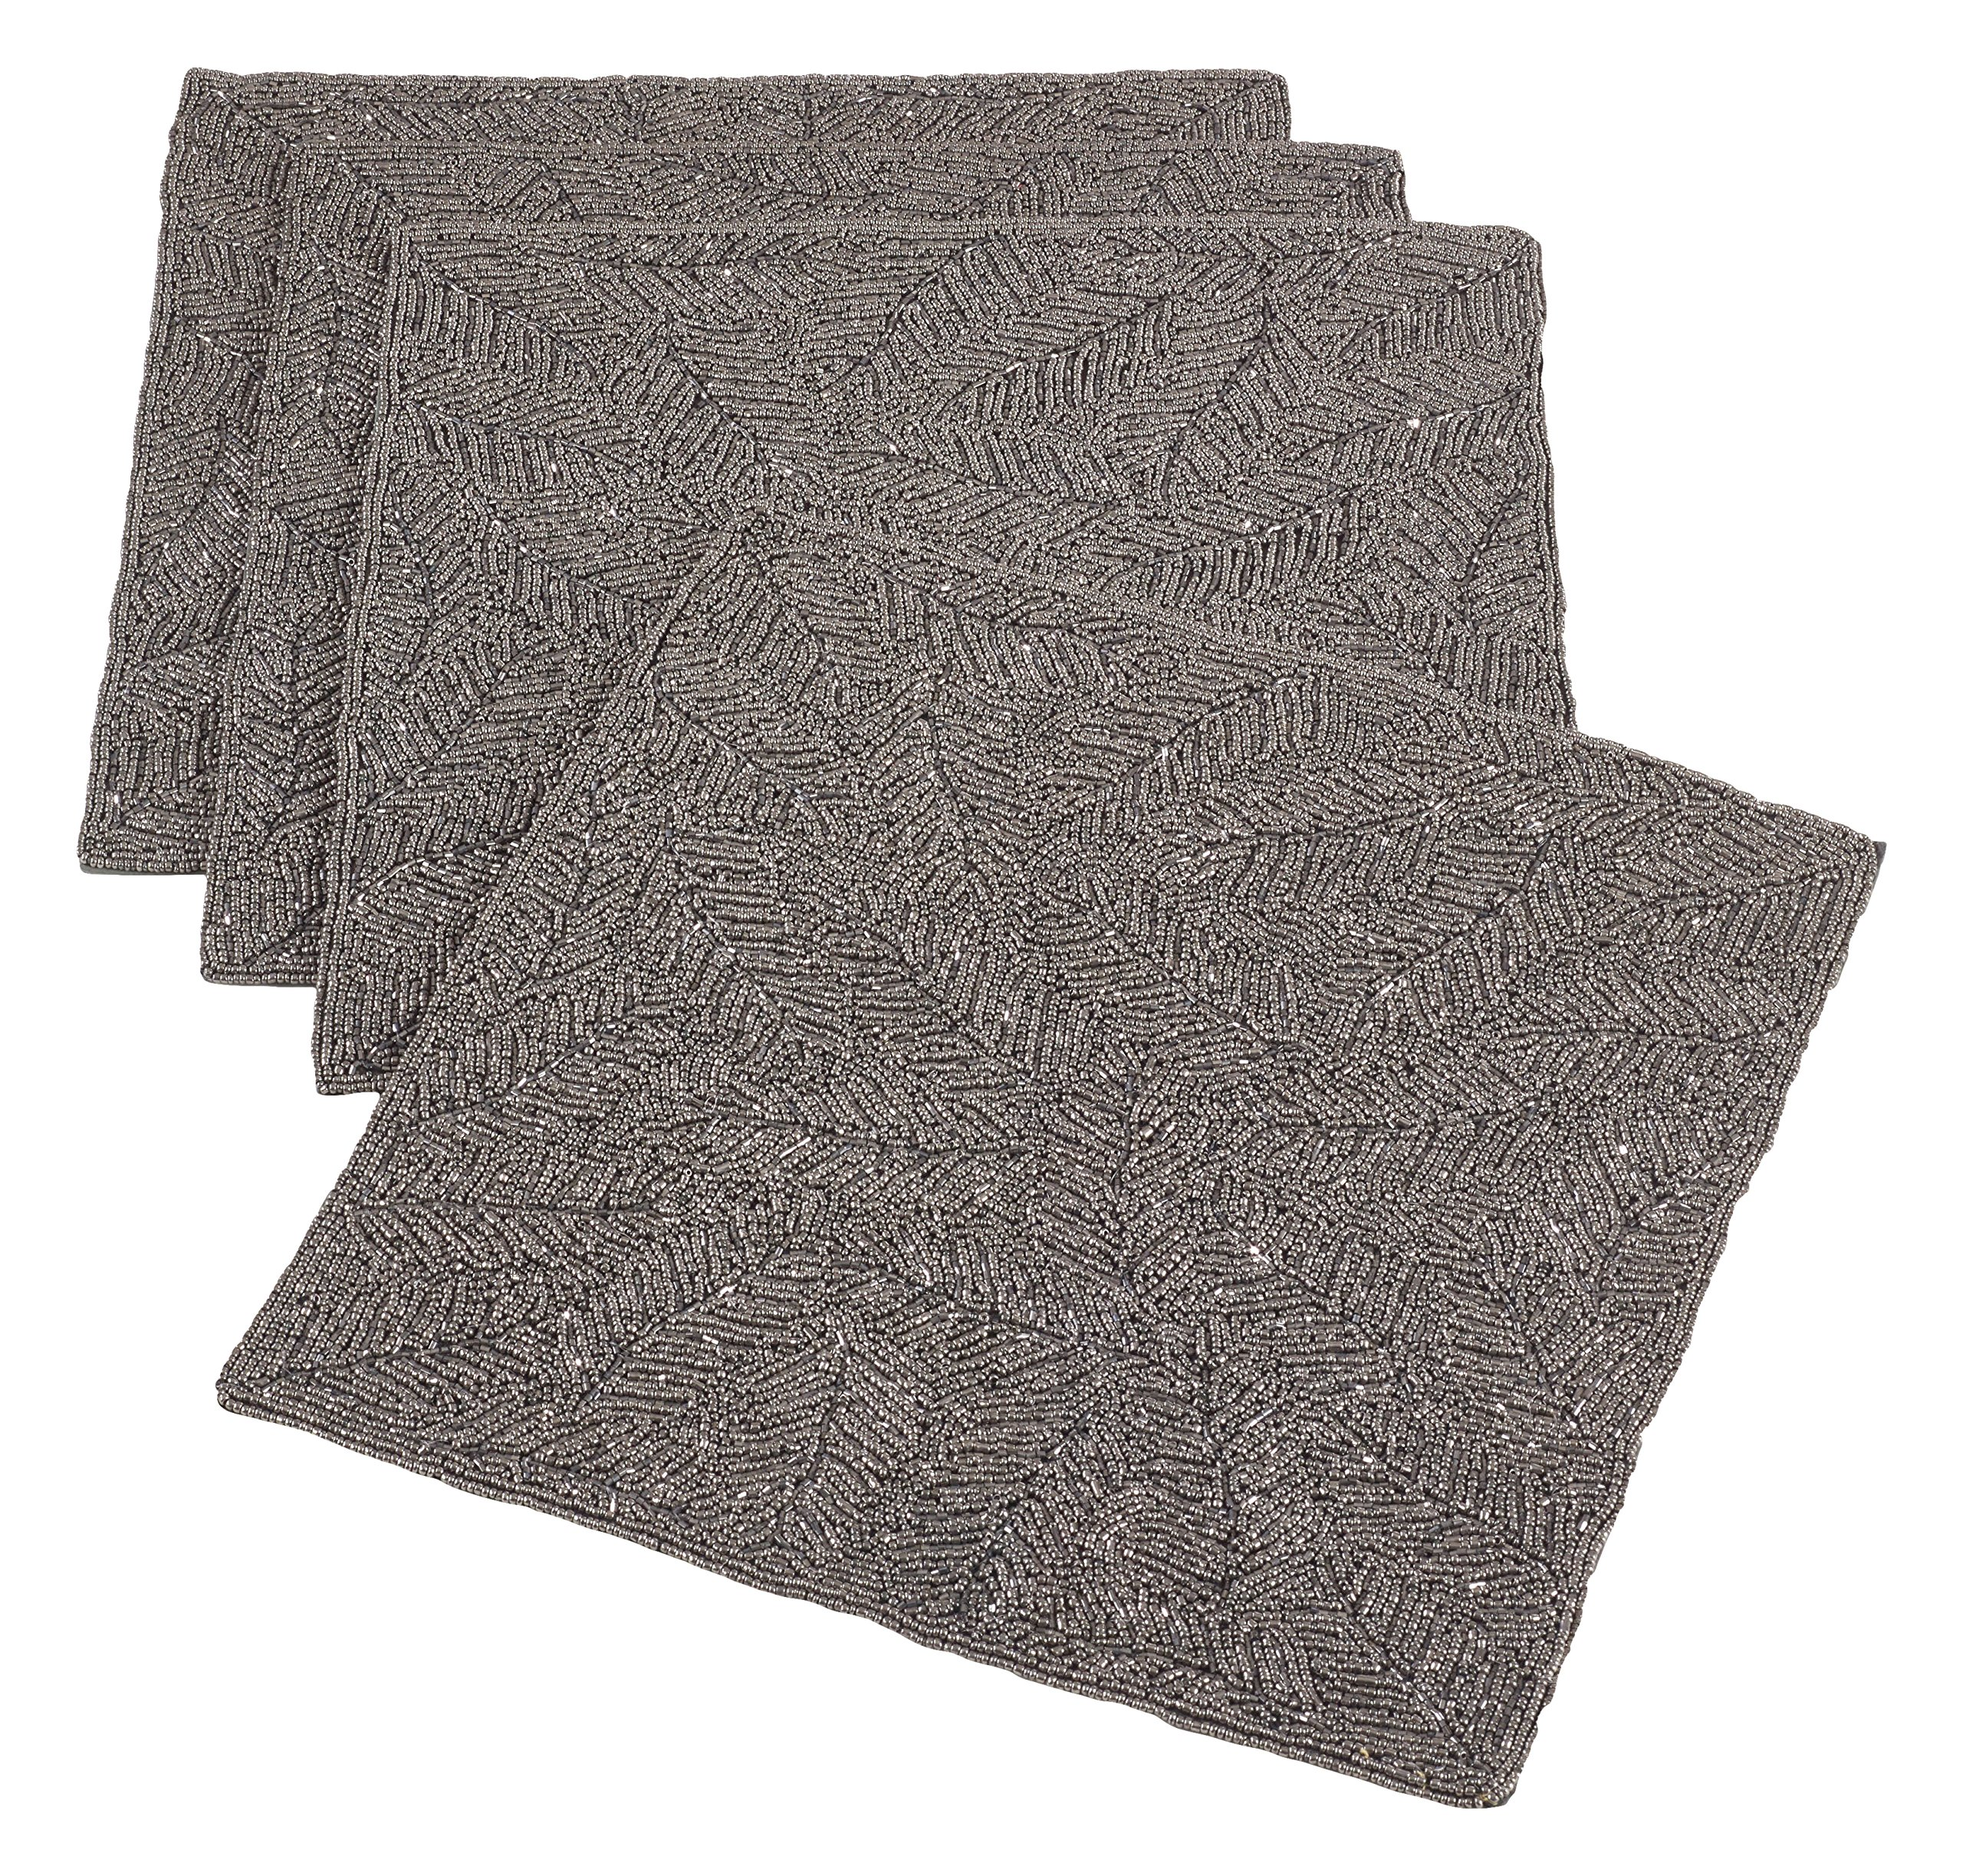 Saro LifeStyle 2357.GY15S  Beaded Design Placemat , Grey, 15'' (Set of 4 pcs)